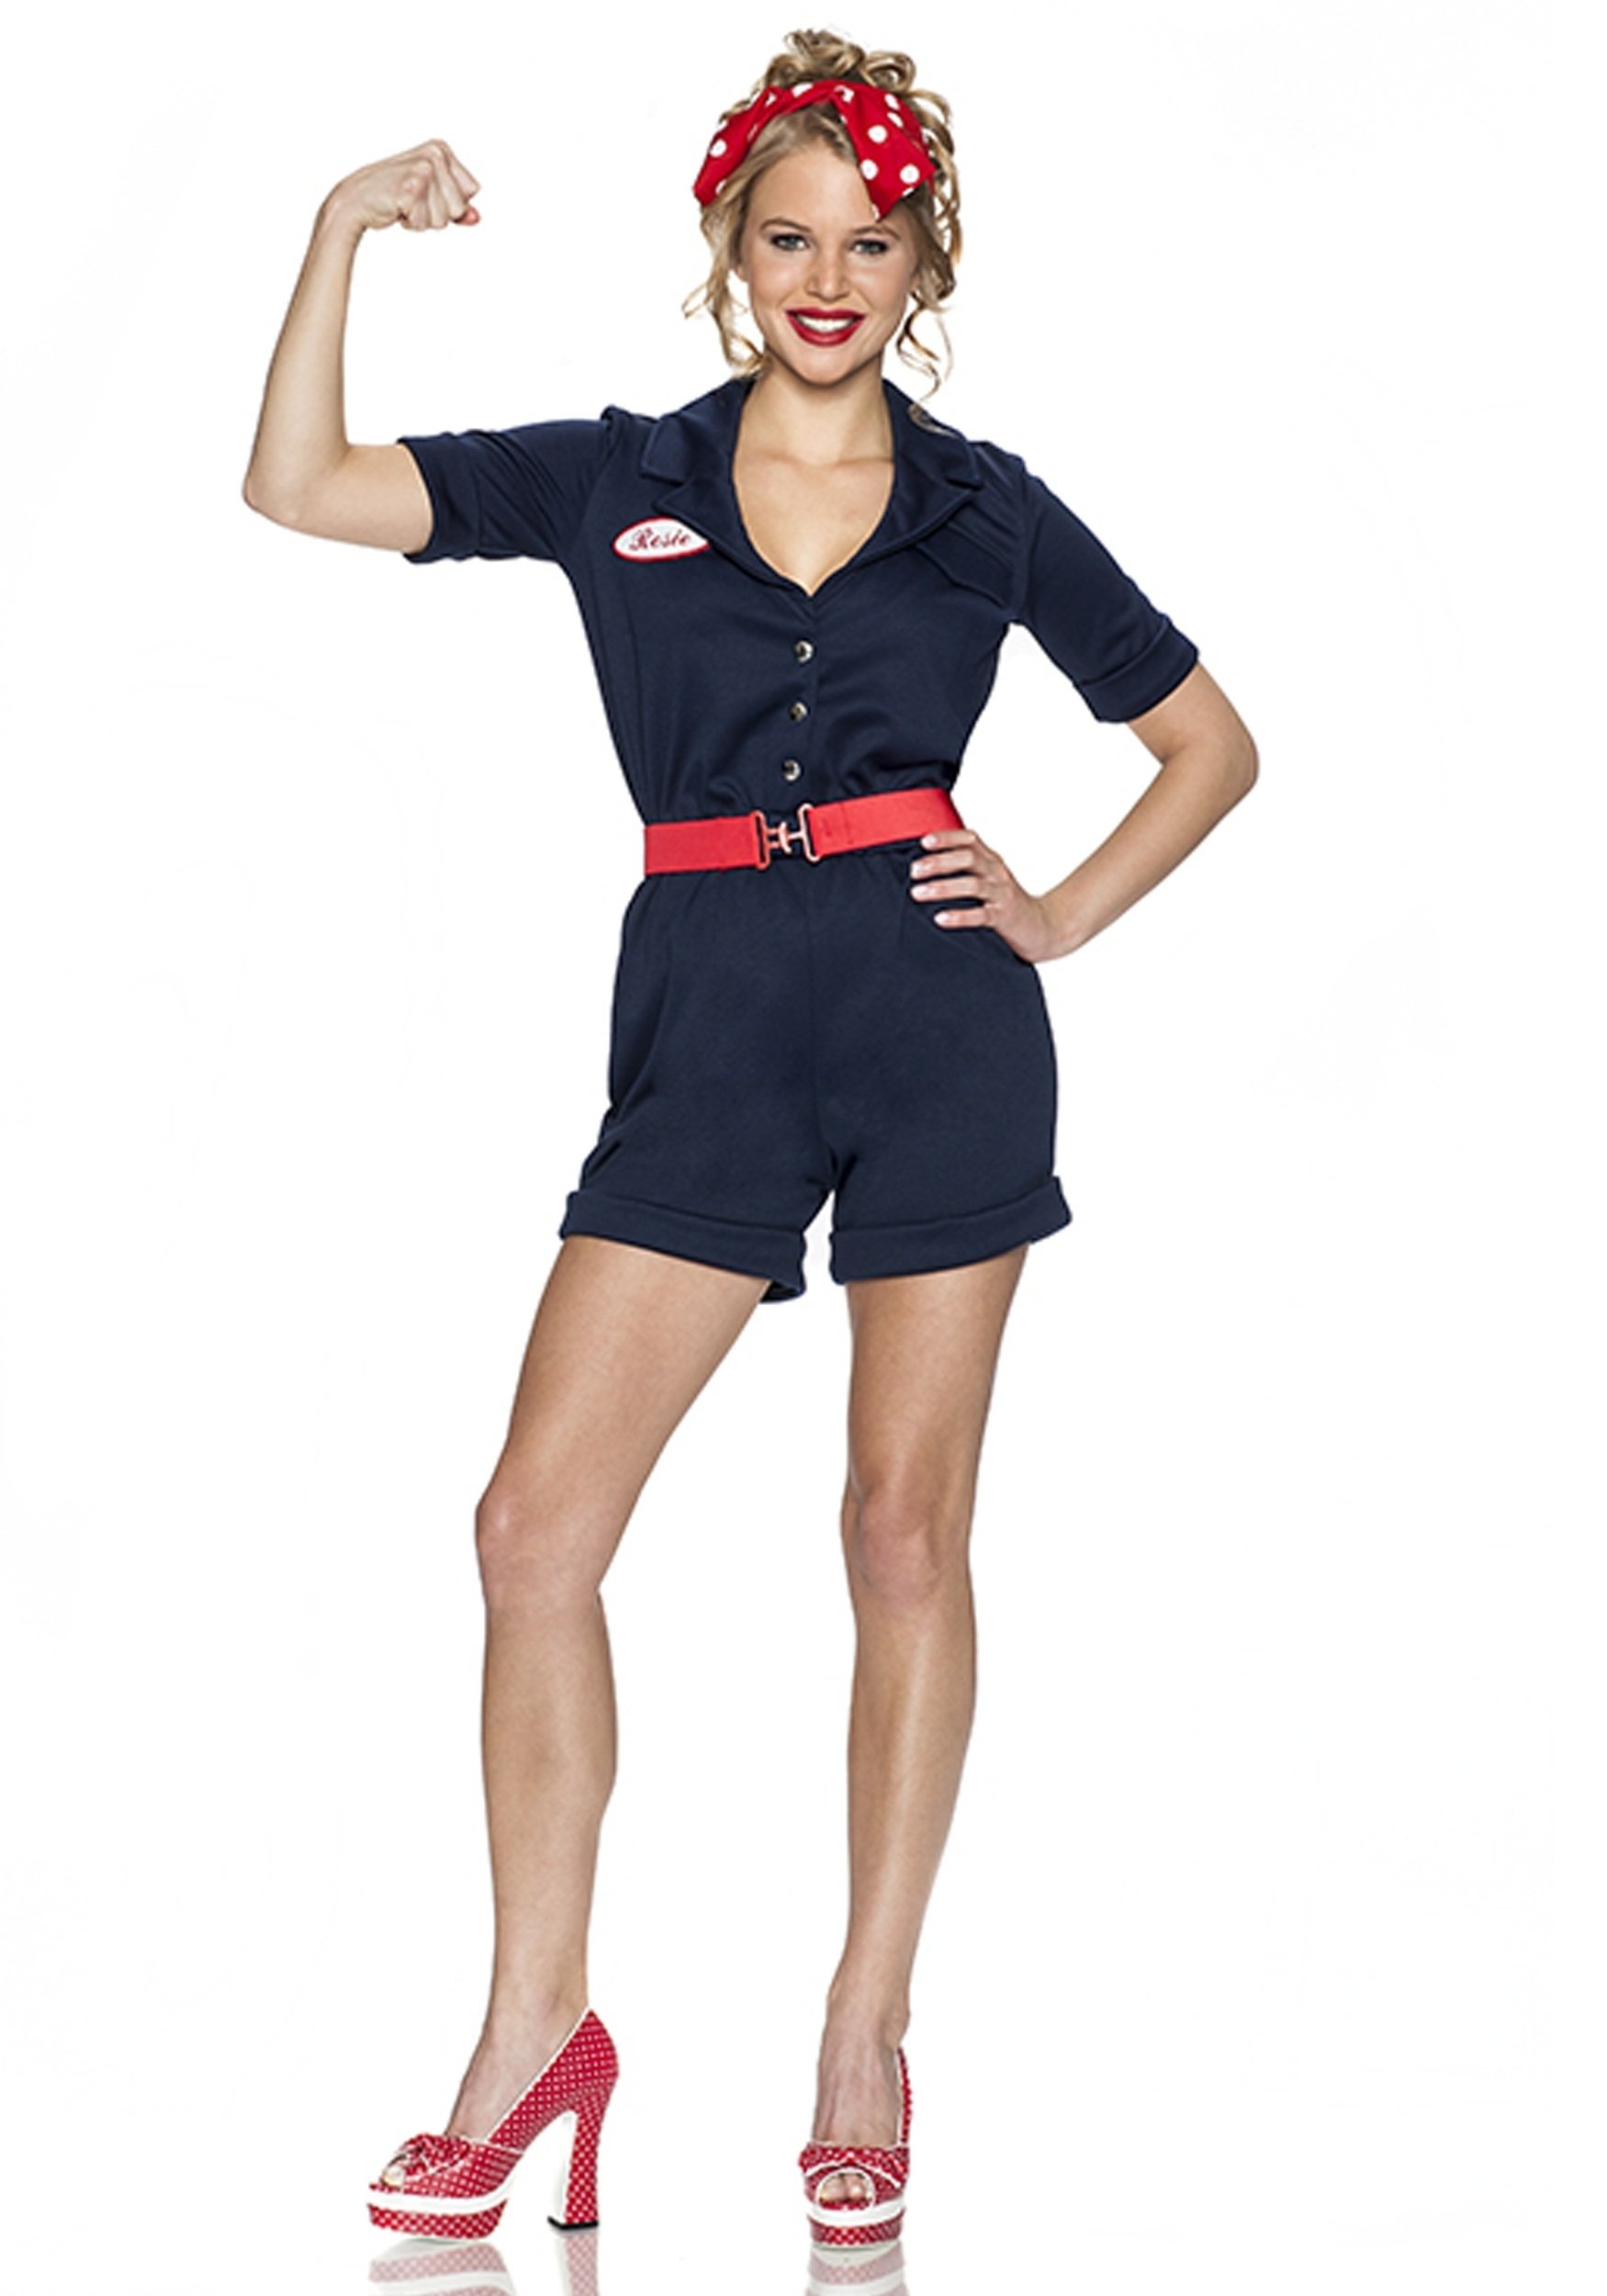 10 Nice Pin Up Girl Halloween Costume Ideas riveting rosie costume a 1940s throw back and perfect for our 1 2020